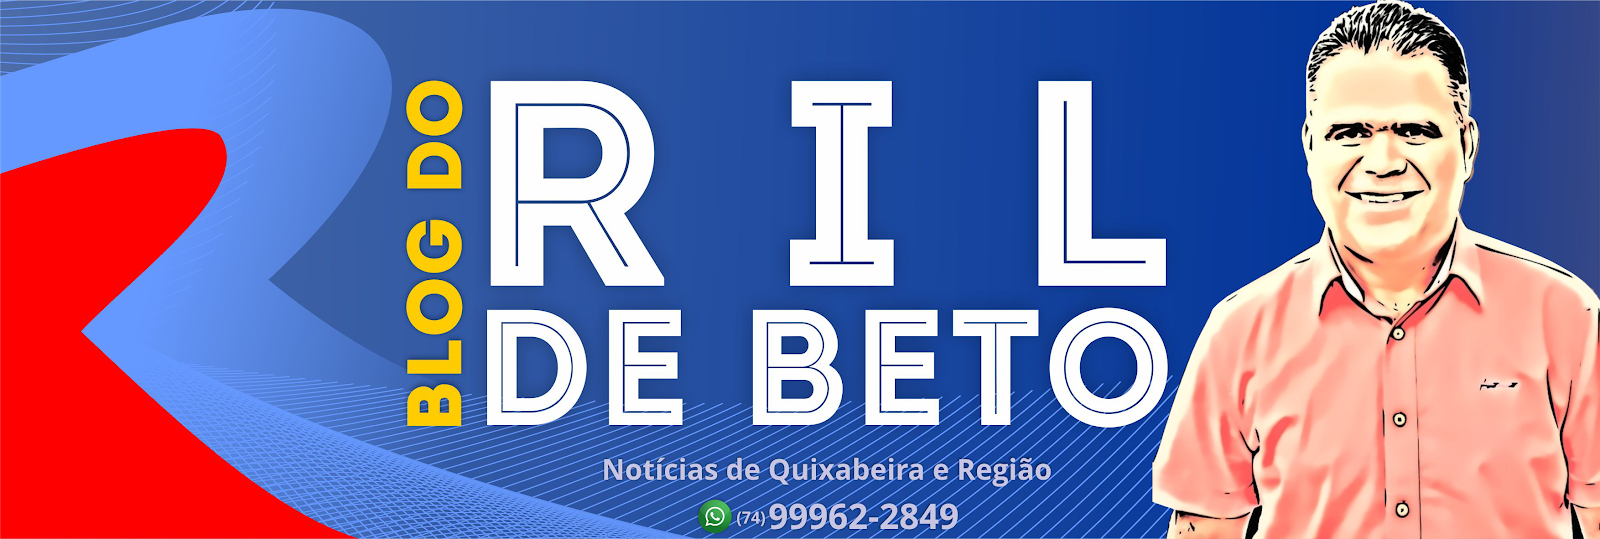 Blog do Ril de Beto